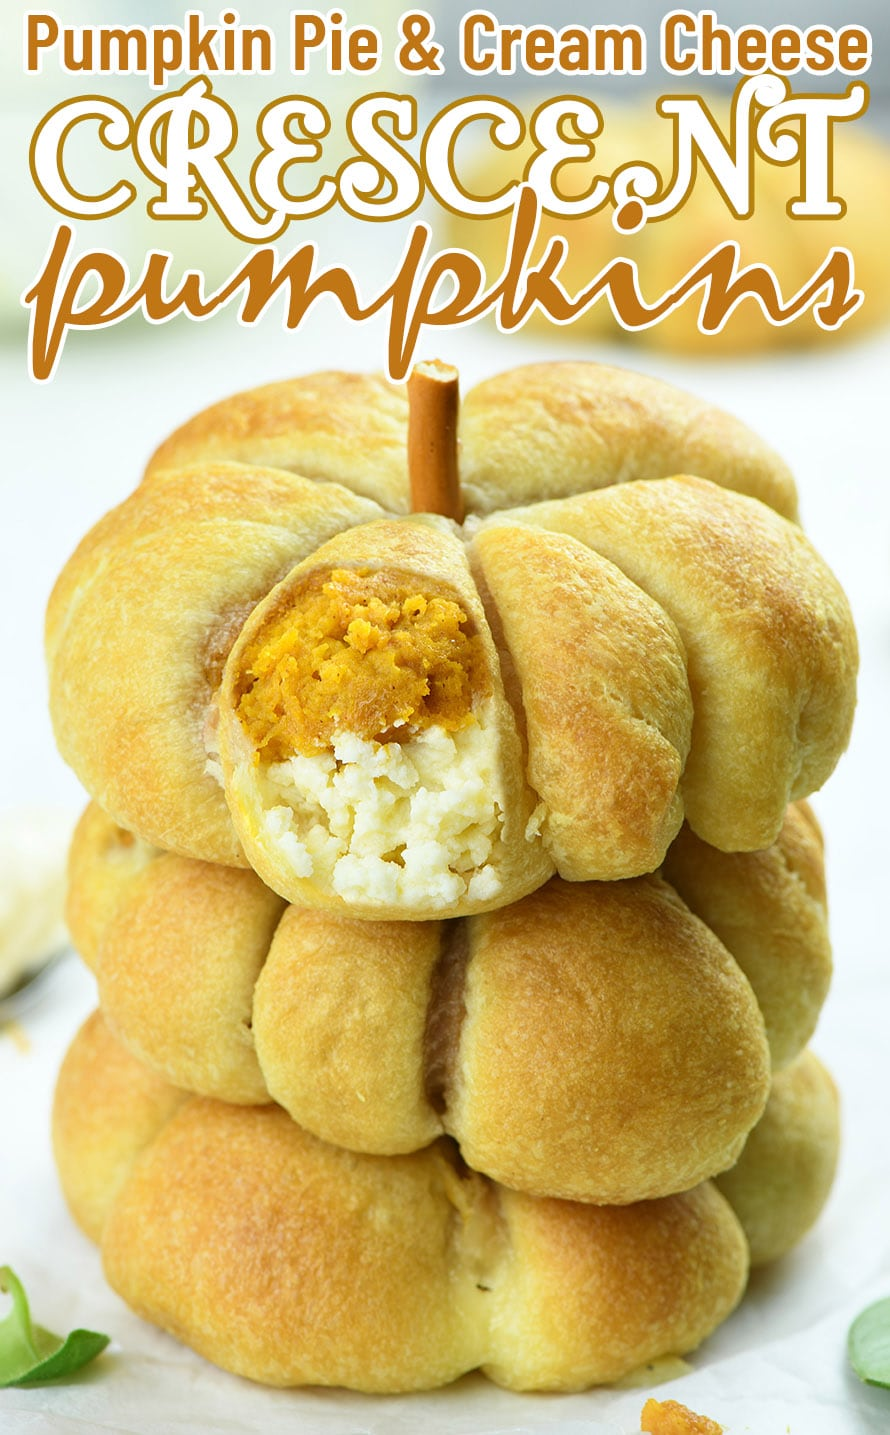 Crescent Pumpkins with Cream Cheese and Pumpkin Pie Filling are delicious fall breakfast, dessert, or snack. Smooth cream cheese and sweet pumpkin pie filling are wrapped in the luscious crescent dough for a perfect fall treat.